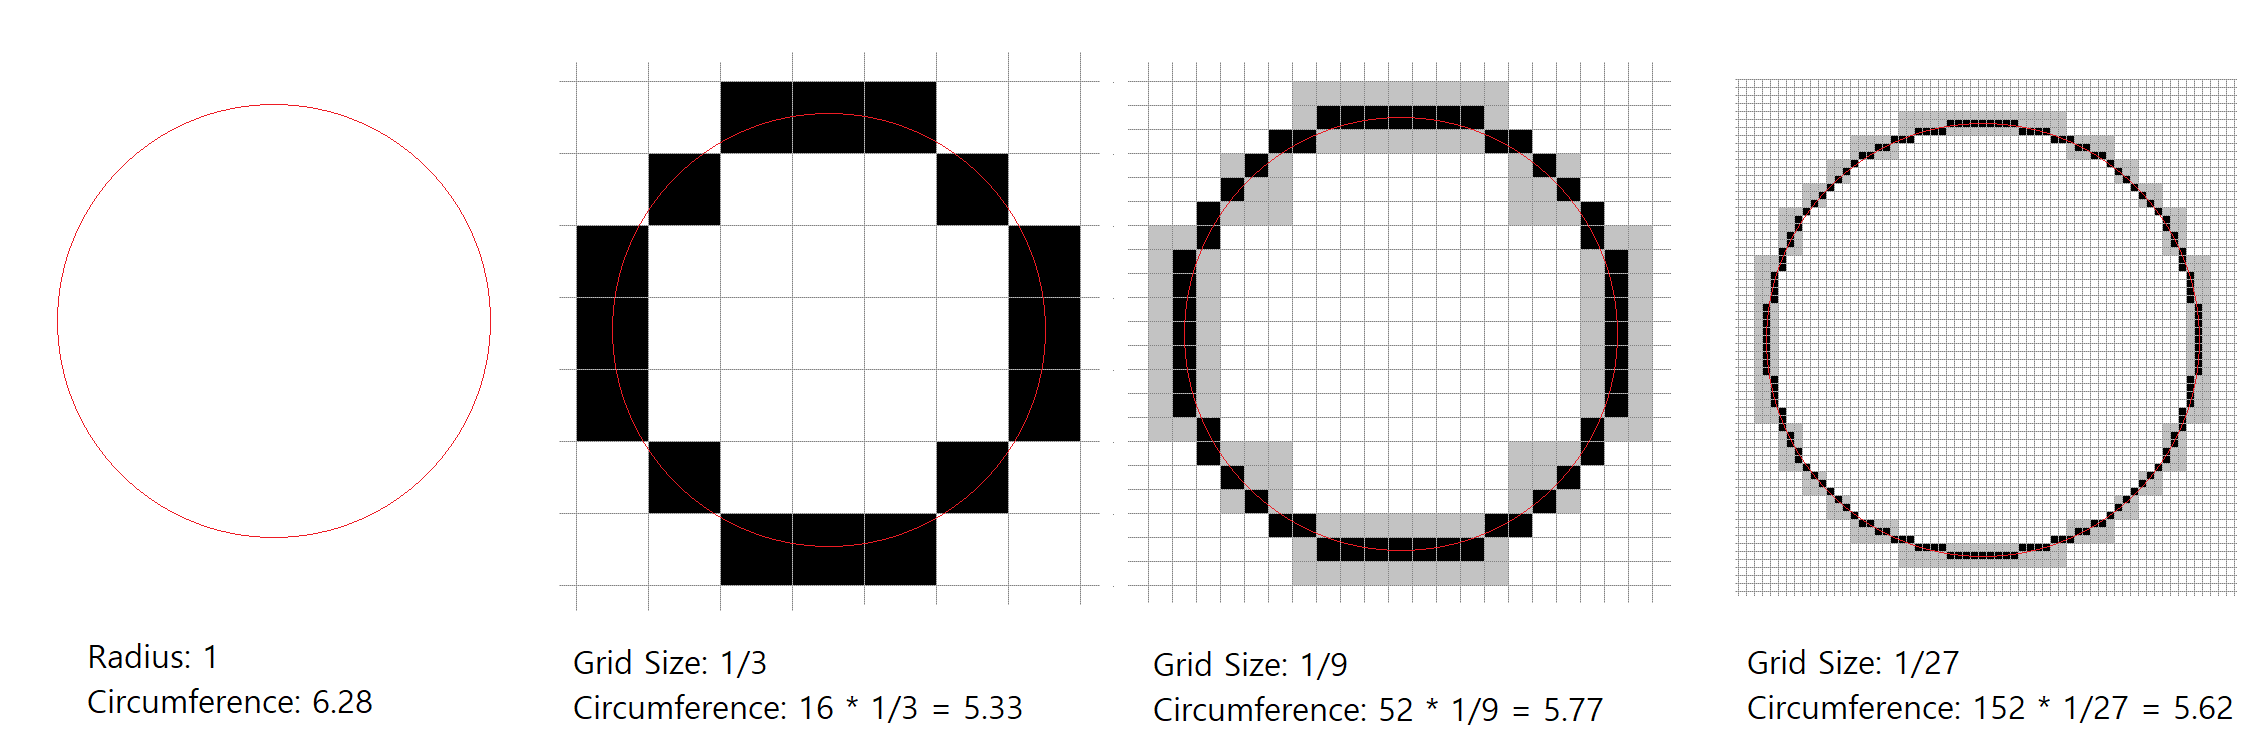 Approximating a circle with pixels in a grid (own work, CC BY-SA)